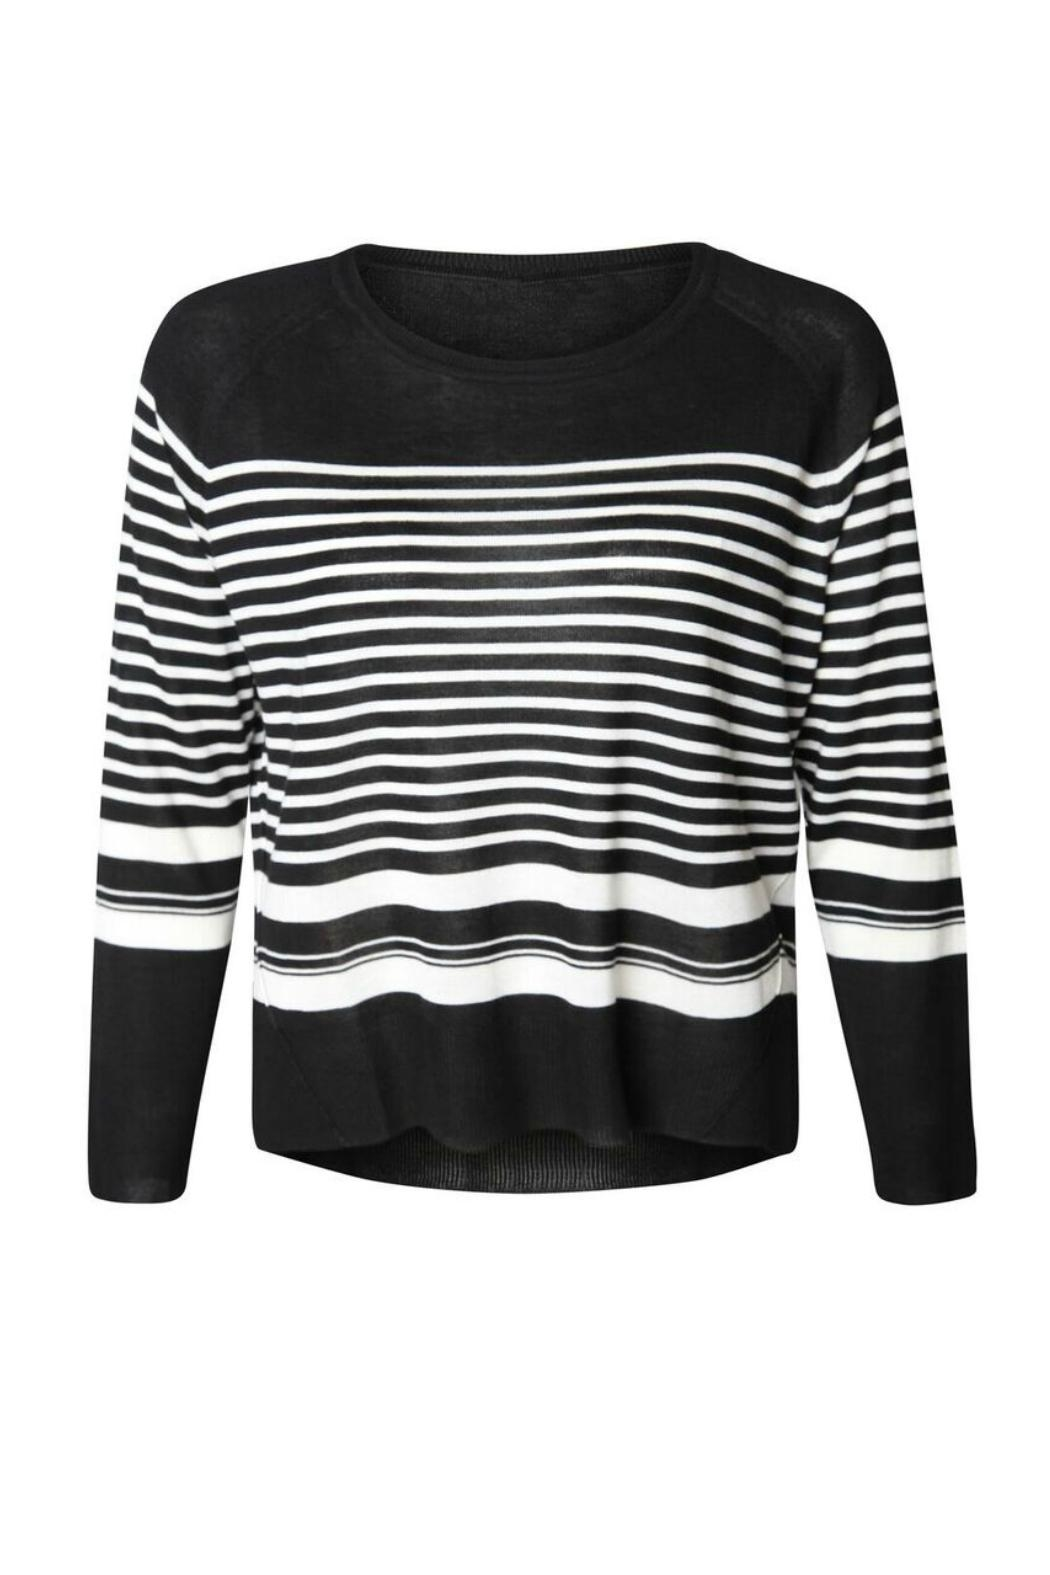 Dex Striped Sweater from British Columbia by Paradise Boutique ...